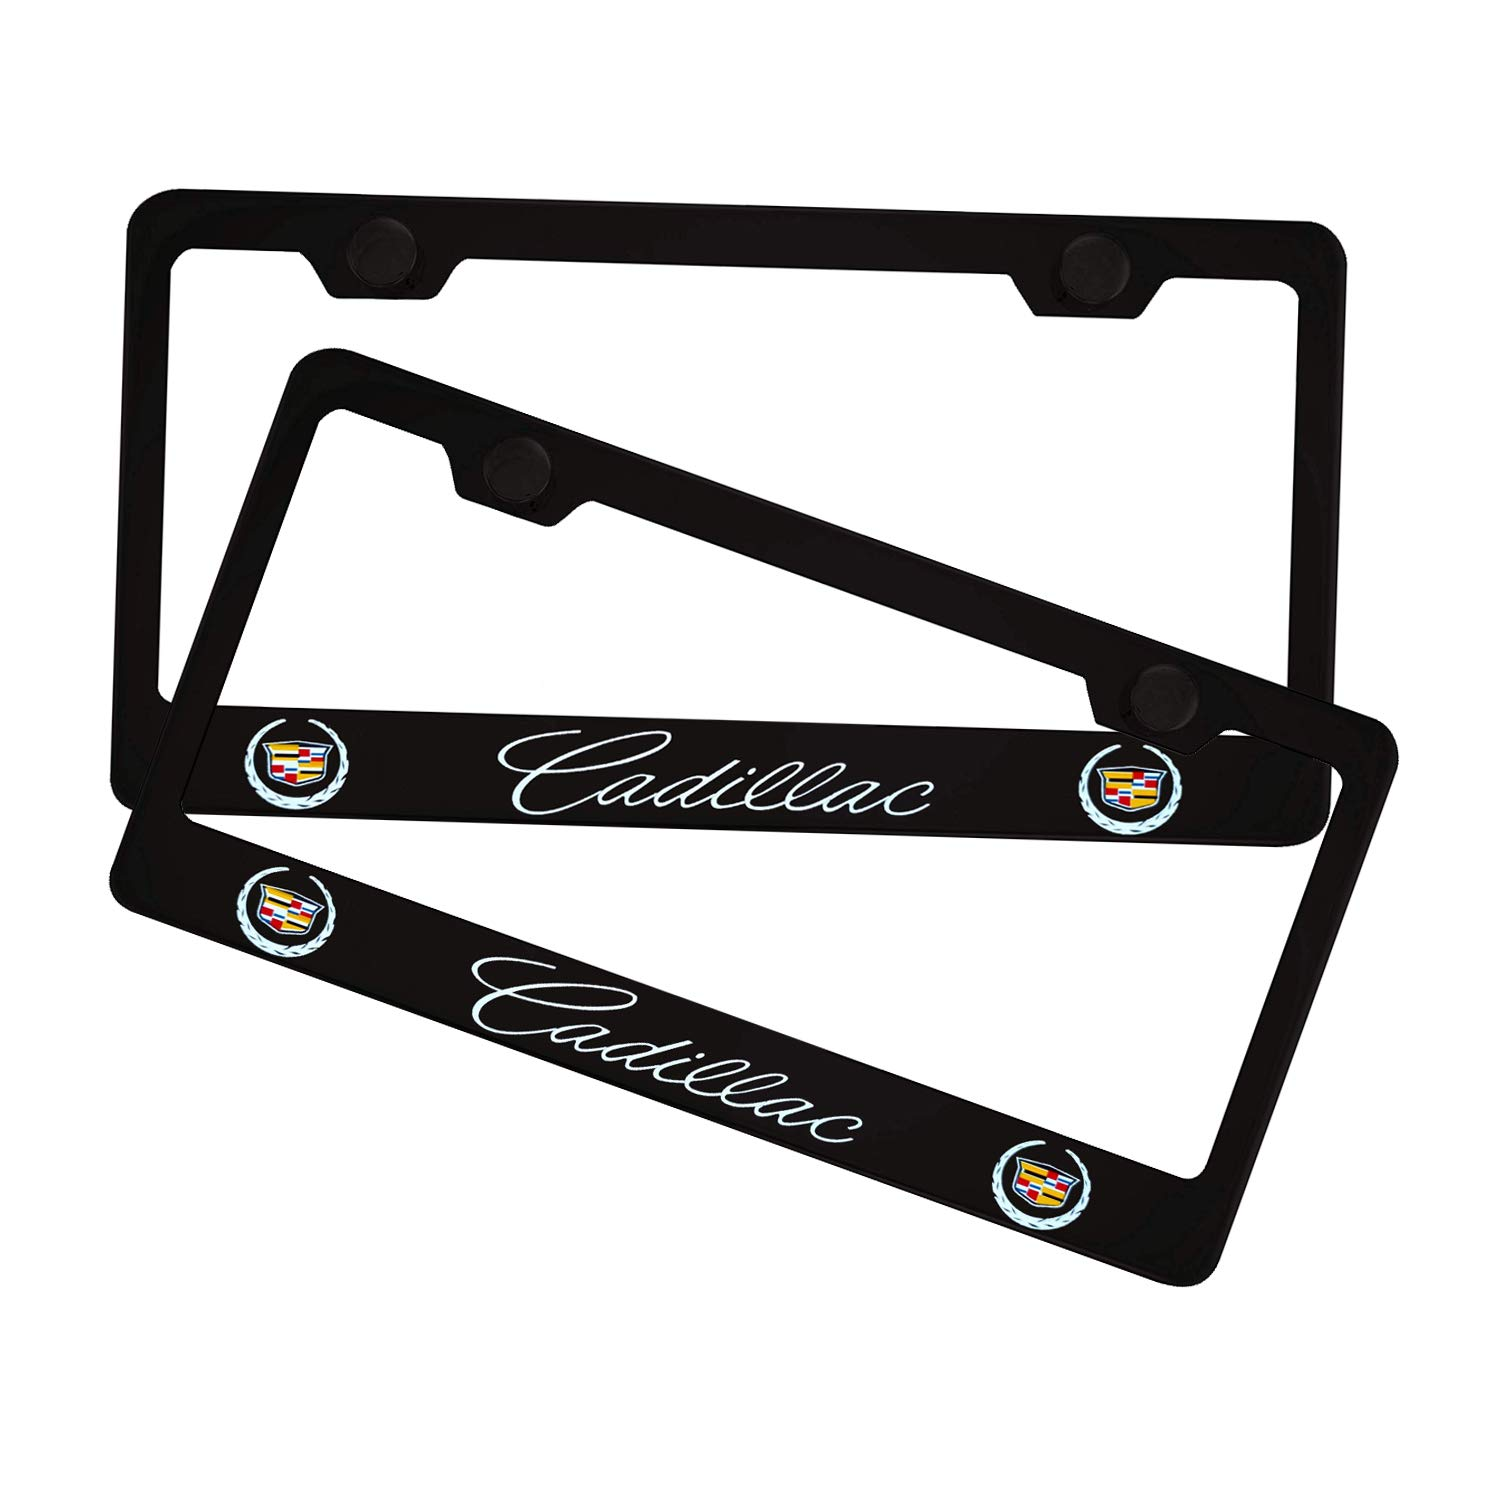 Black Sparkle-um 2Pcs Newest Matte Aluminum Alloy Cadillac Logo License Plate Frame,with Screw Caps Cover Set,Applicable to US Standard car License Frame for Cadillac.